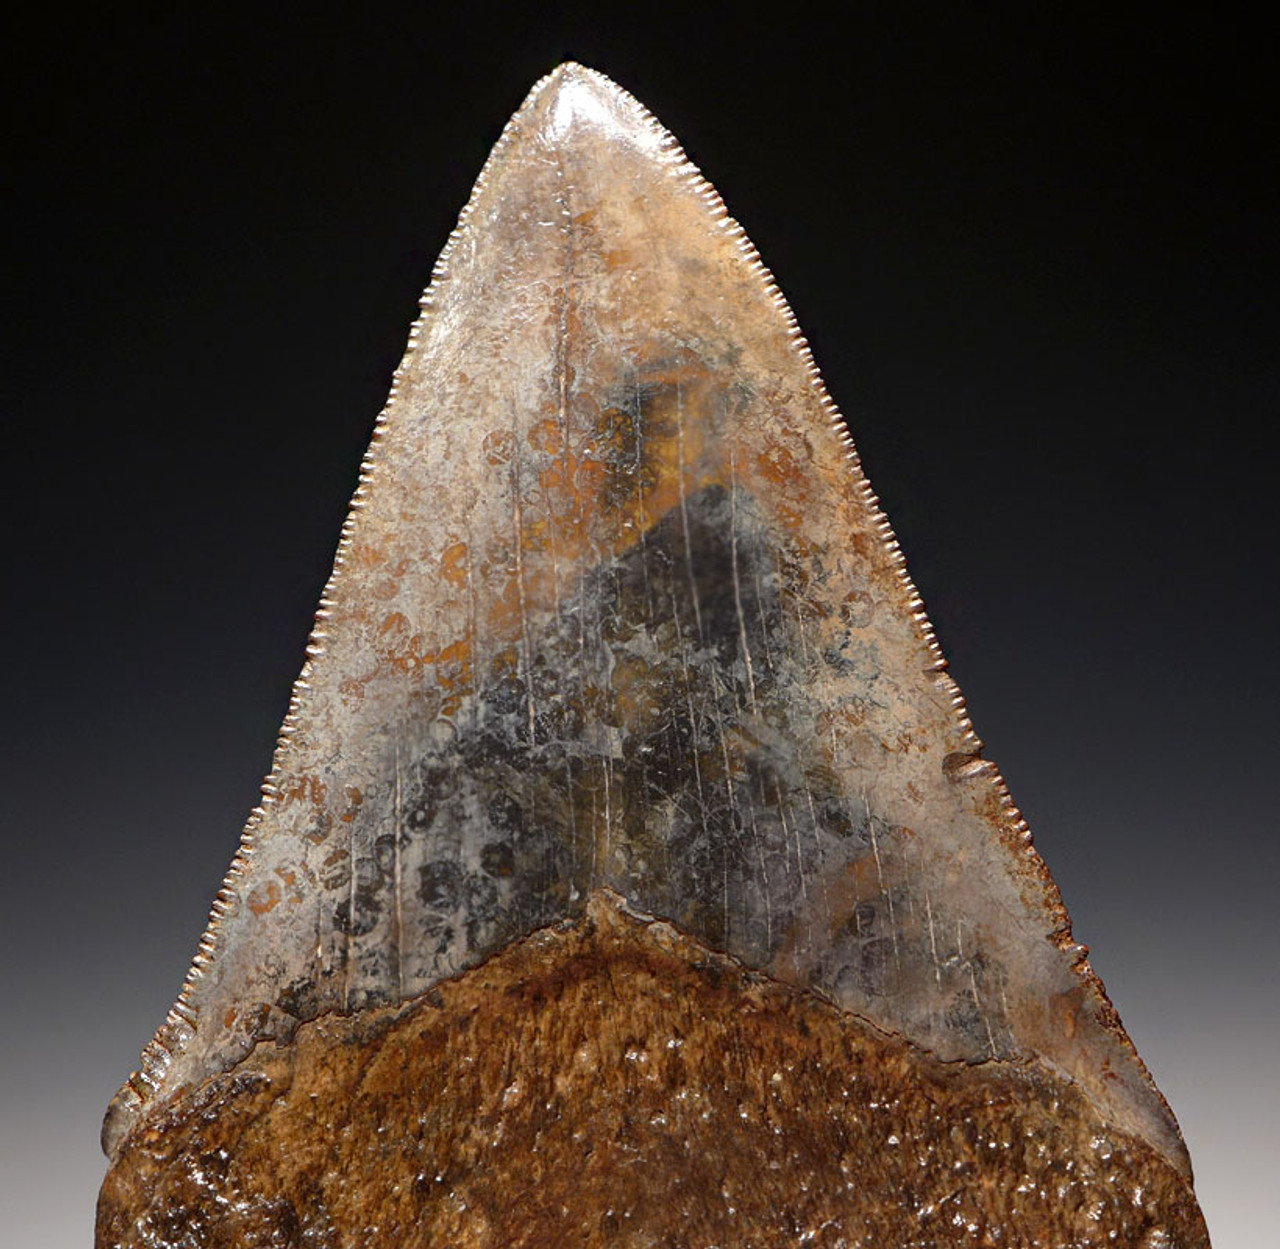 SH6-313 - FINE GRADE 4 INCH GRAY AND BROWN MOTTLED MEGALODON SHARK TOOTH FROM THE LOWER JAW